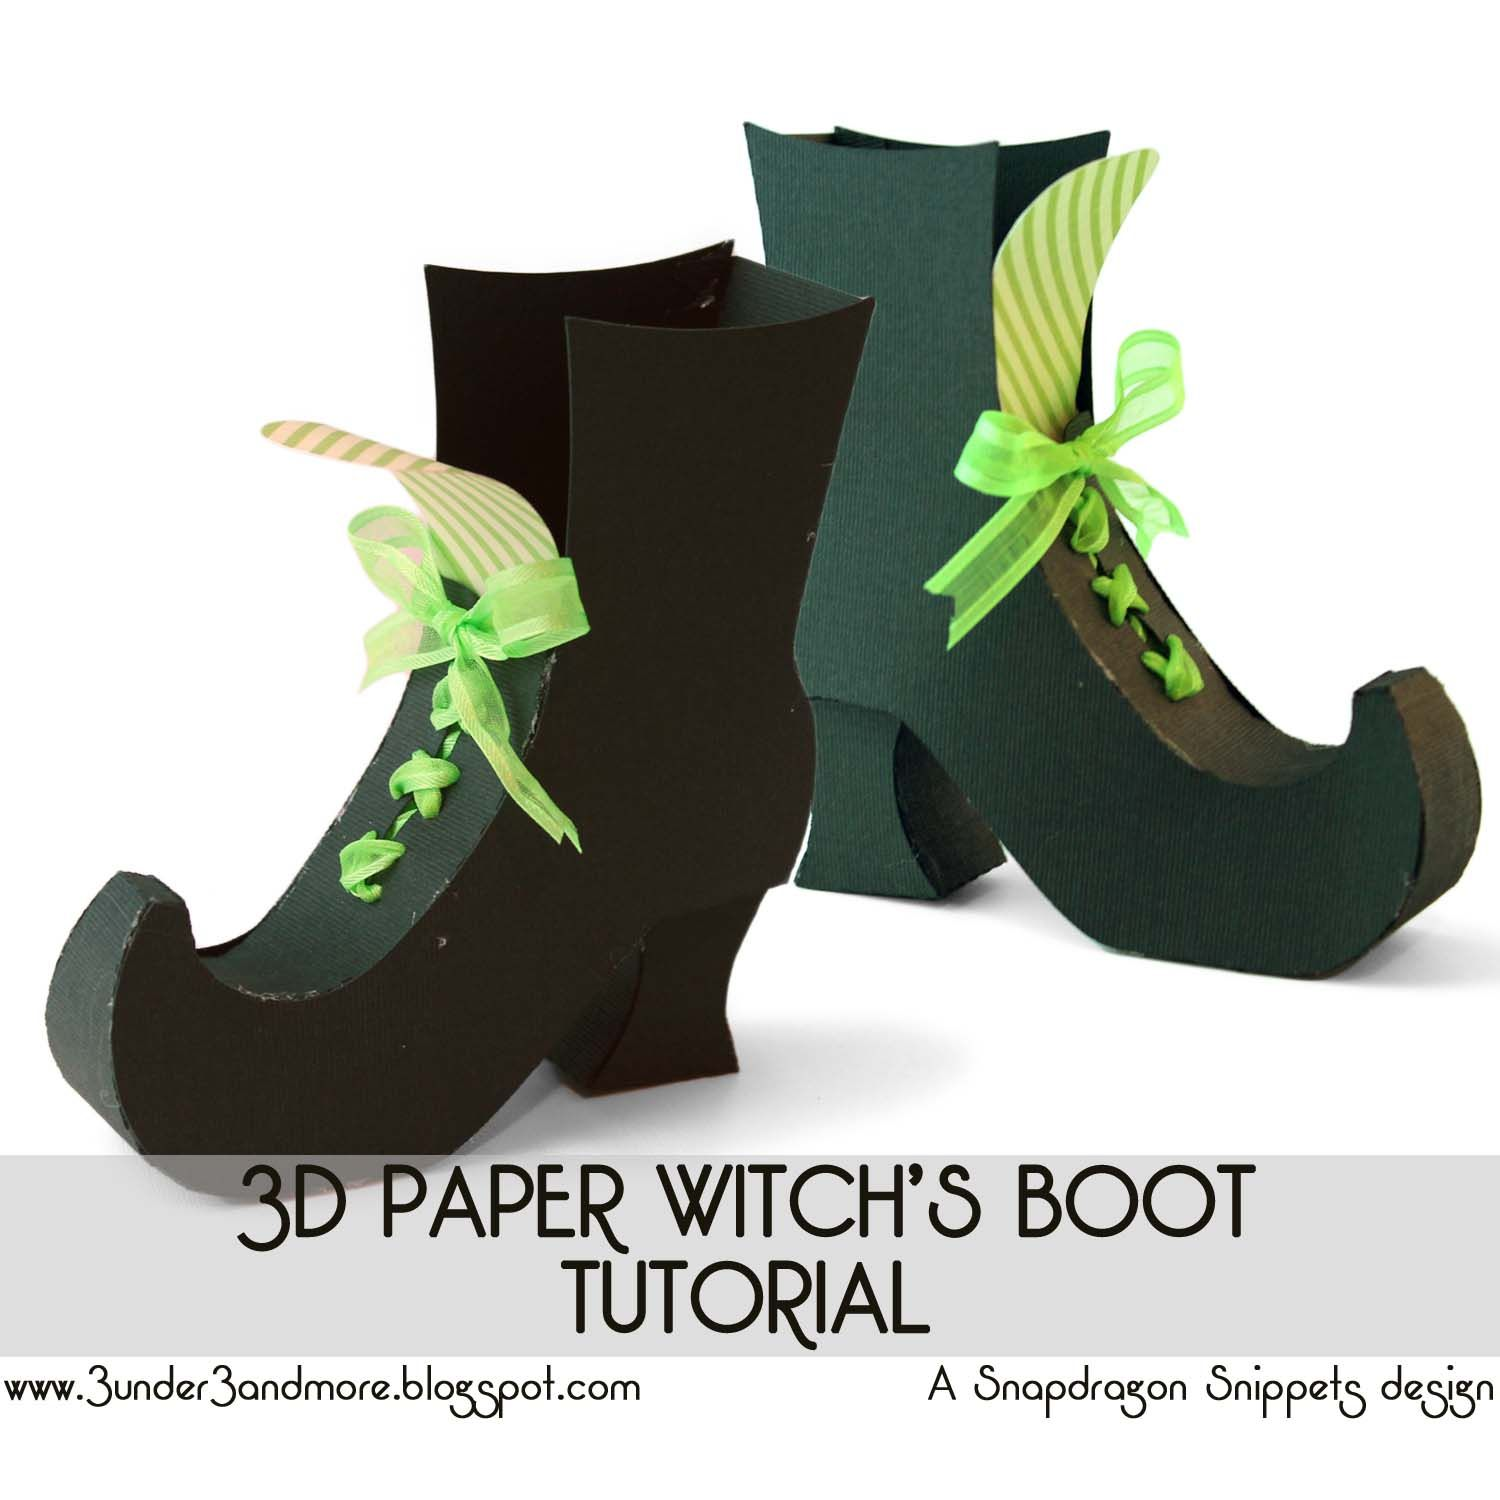 How to make Monster High doll shoes: simple techniques using improvised materials